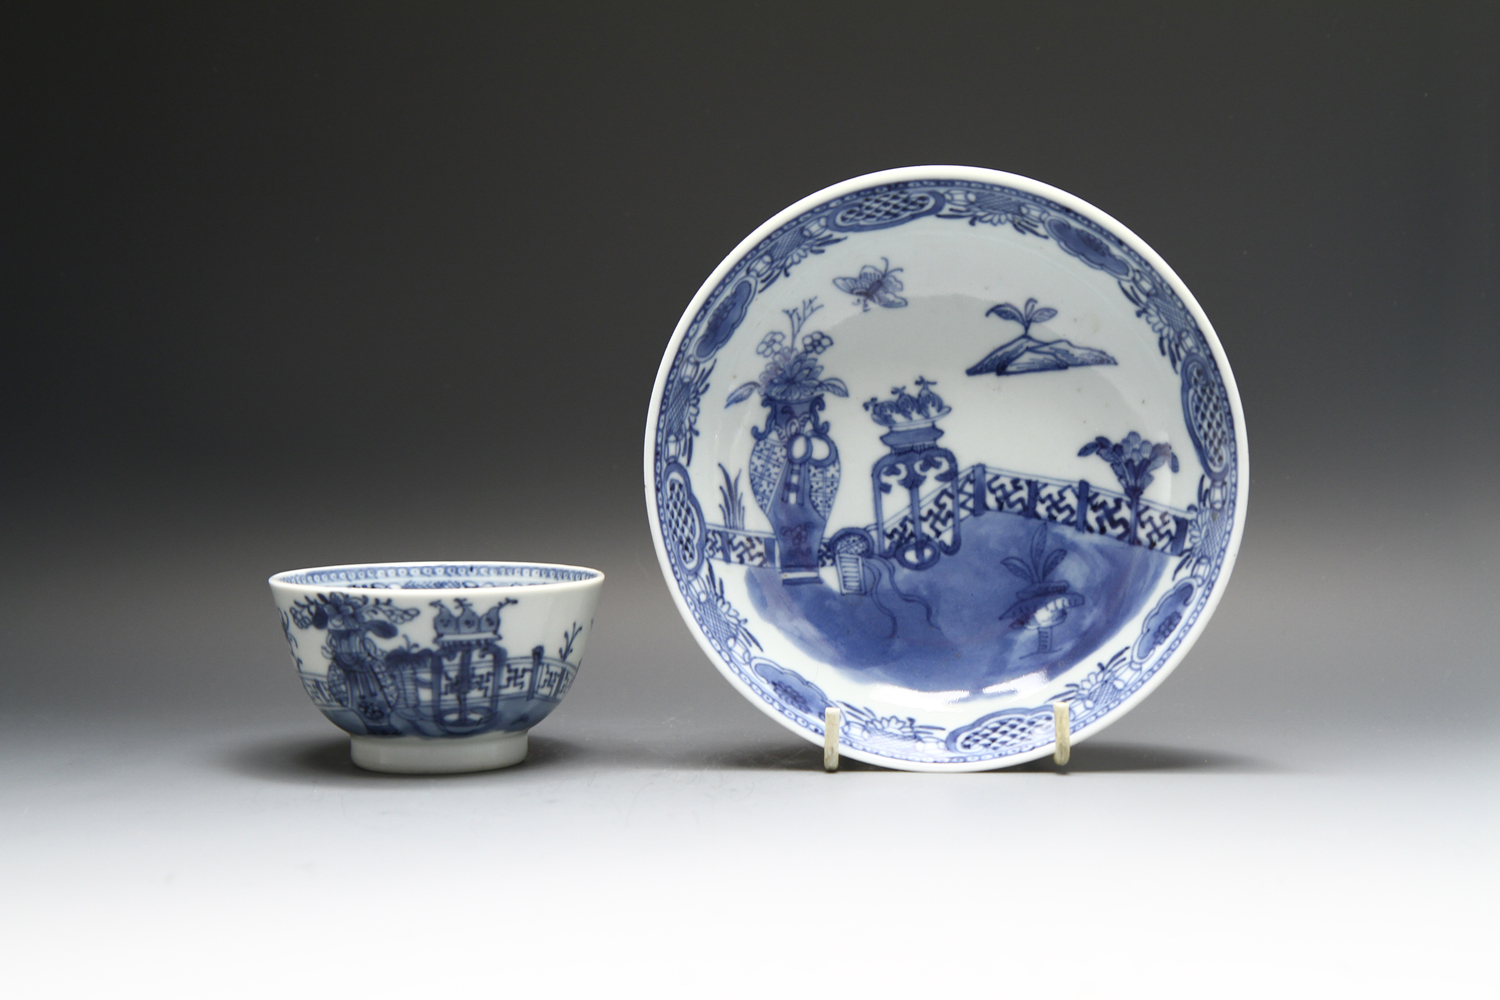 1113 - A nice Chinese teabowl and saucer c 1780